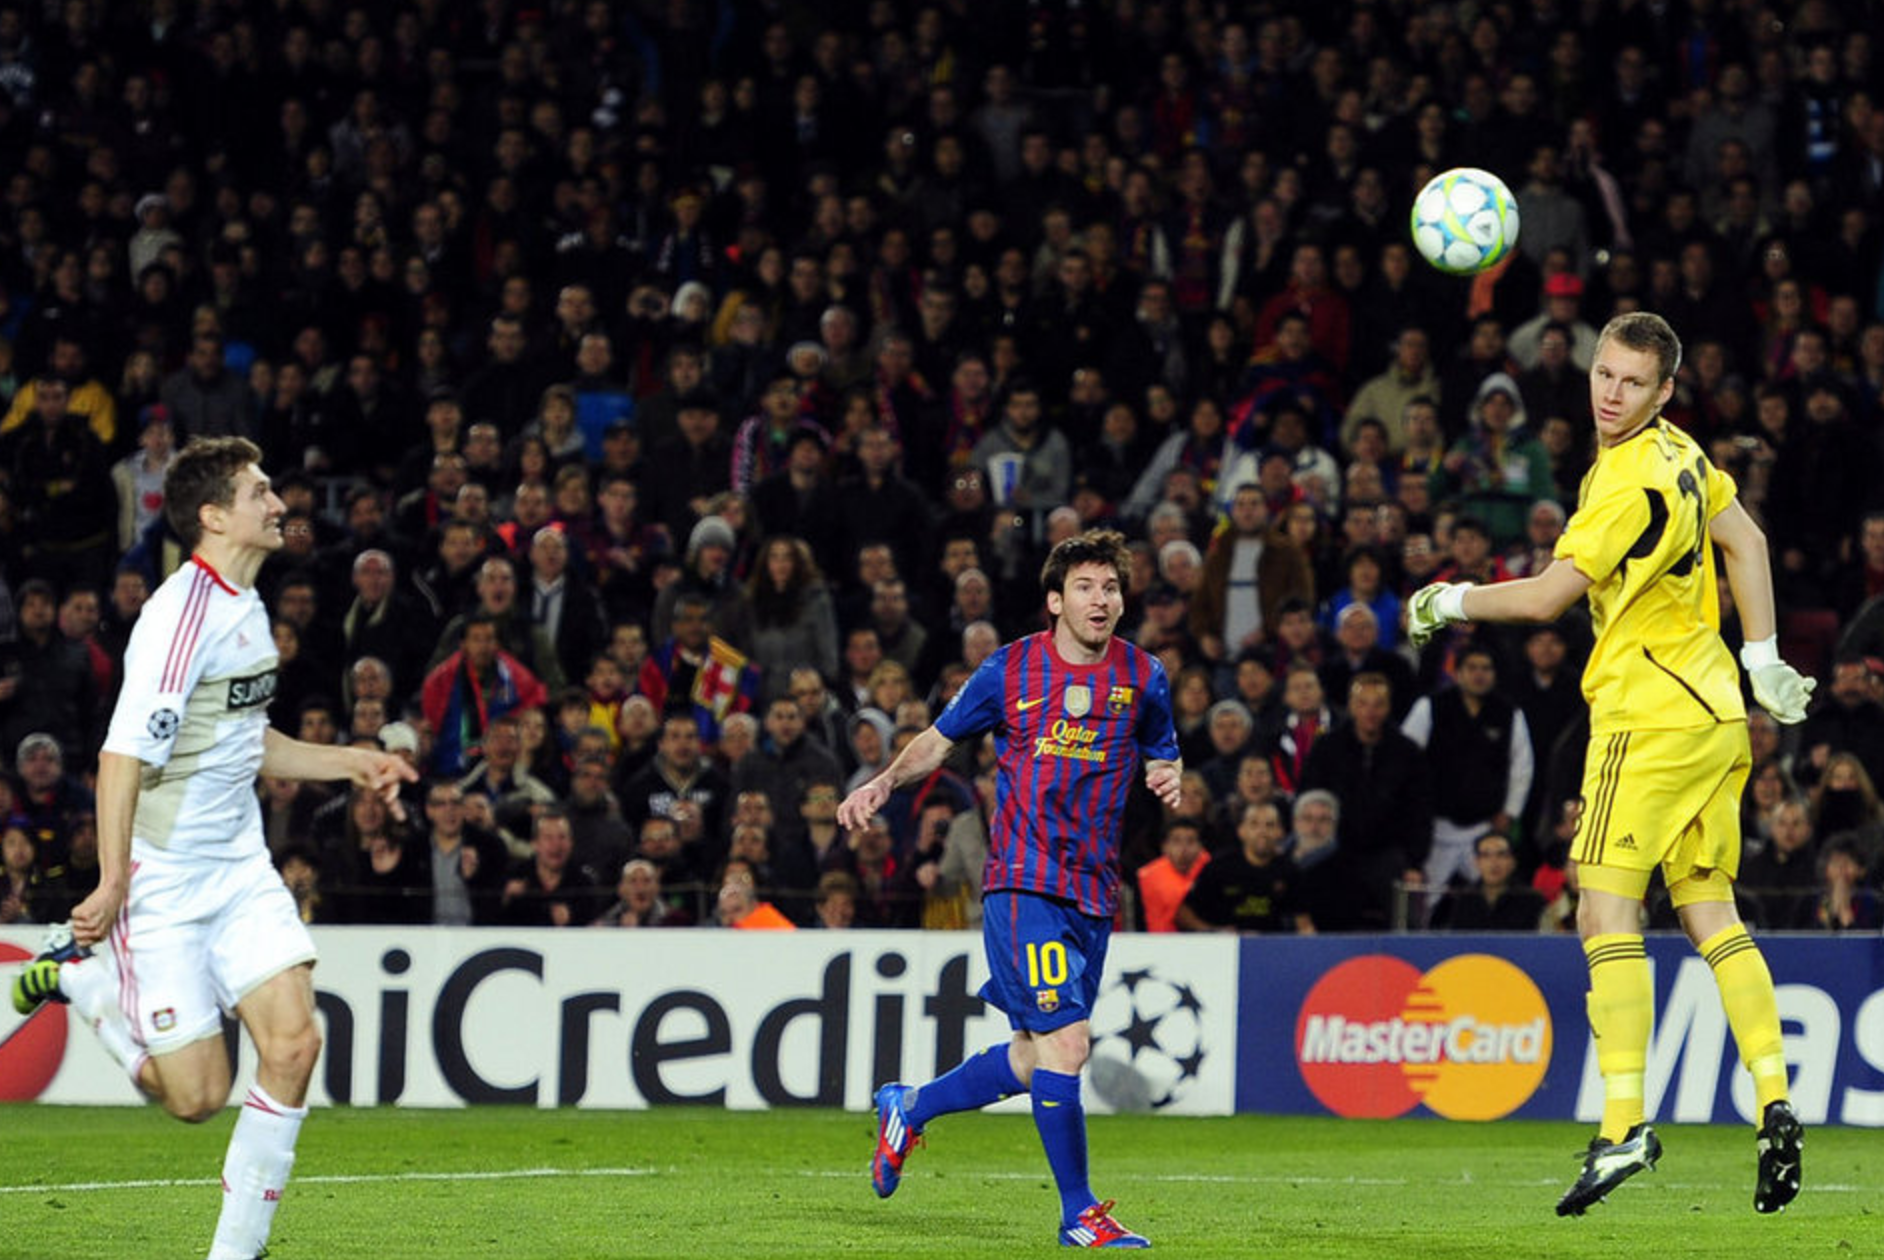 messi scoring against leverkusen 2012